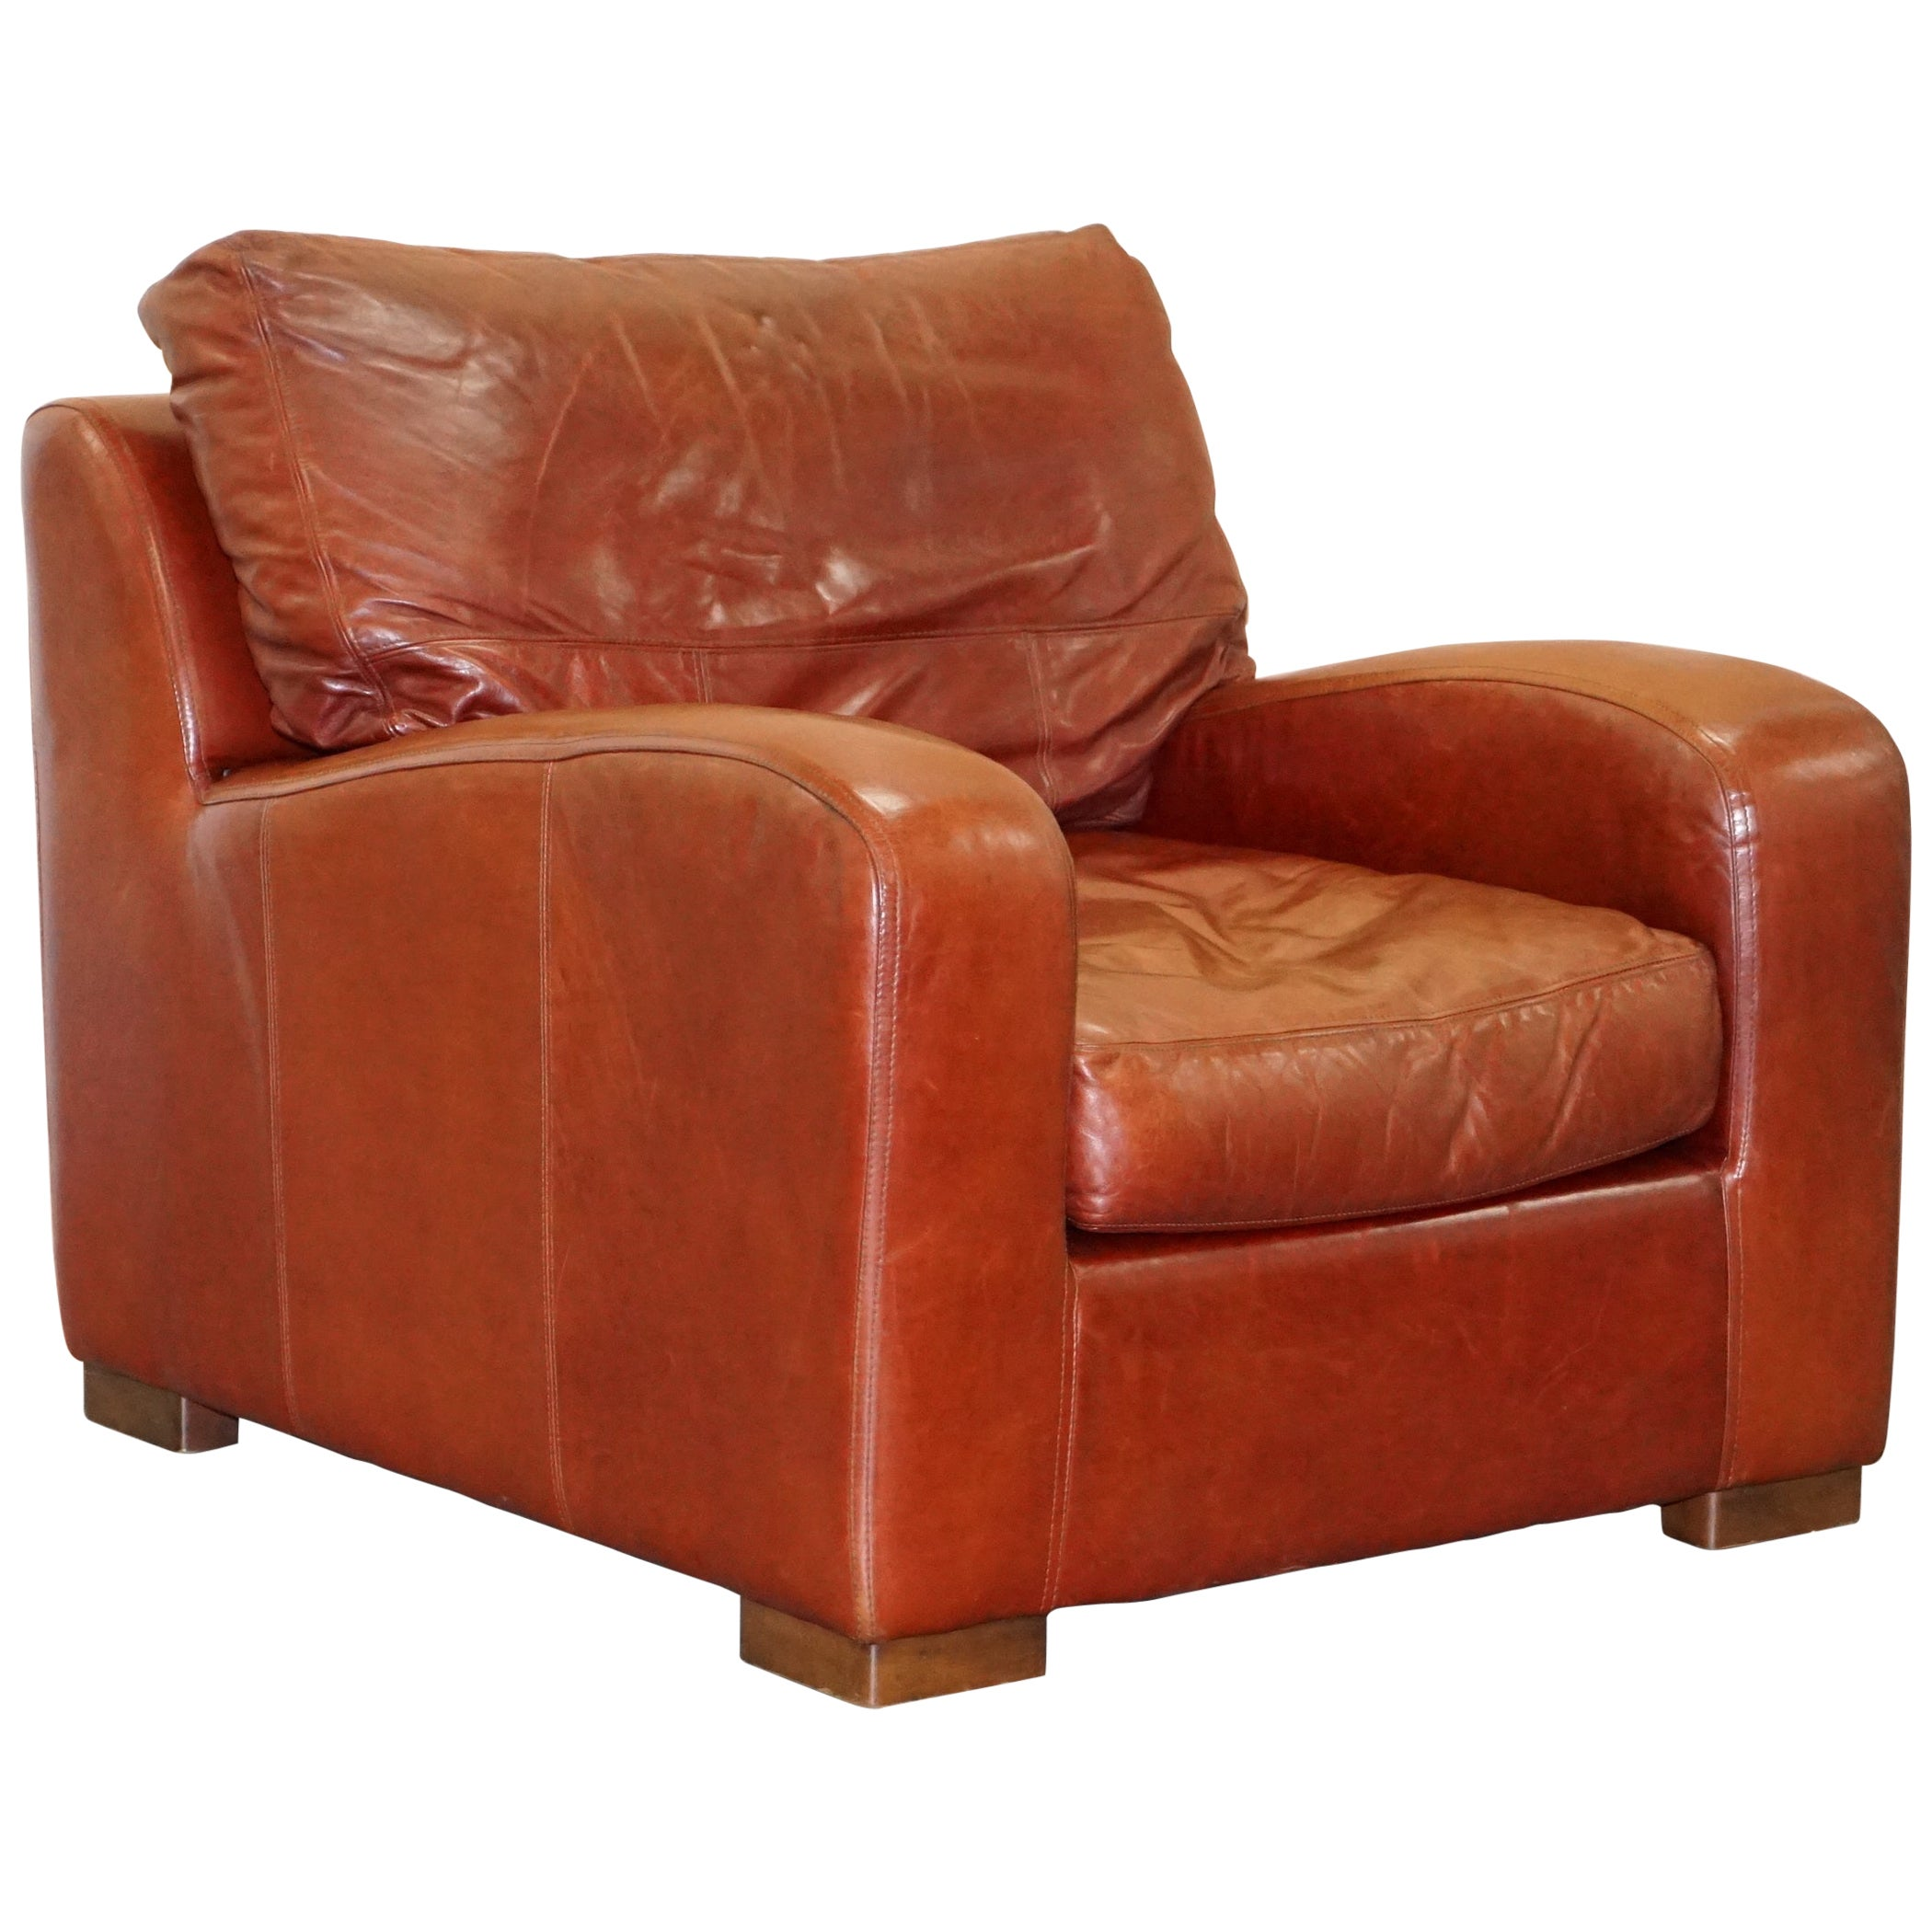 Duresta Panther Aged Brown Heritage Leather Armchair Feather Cushion